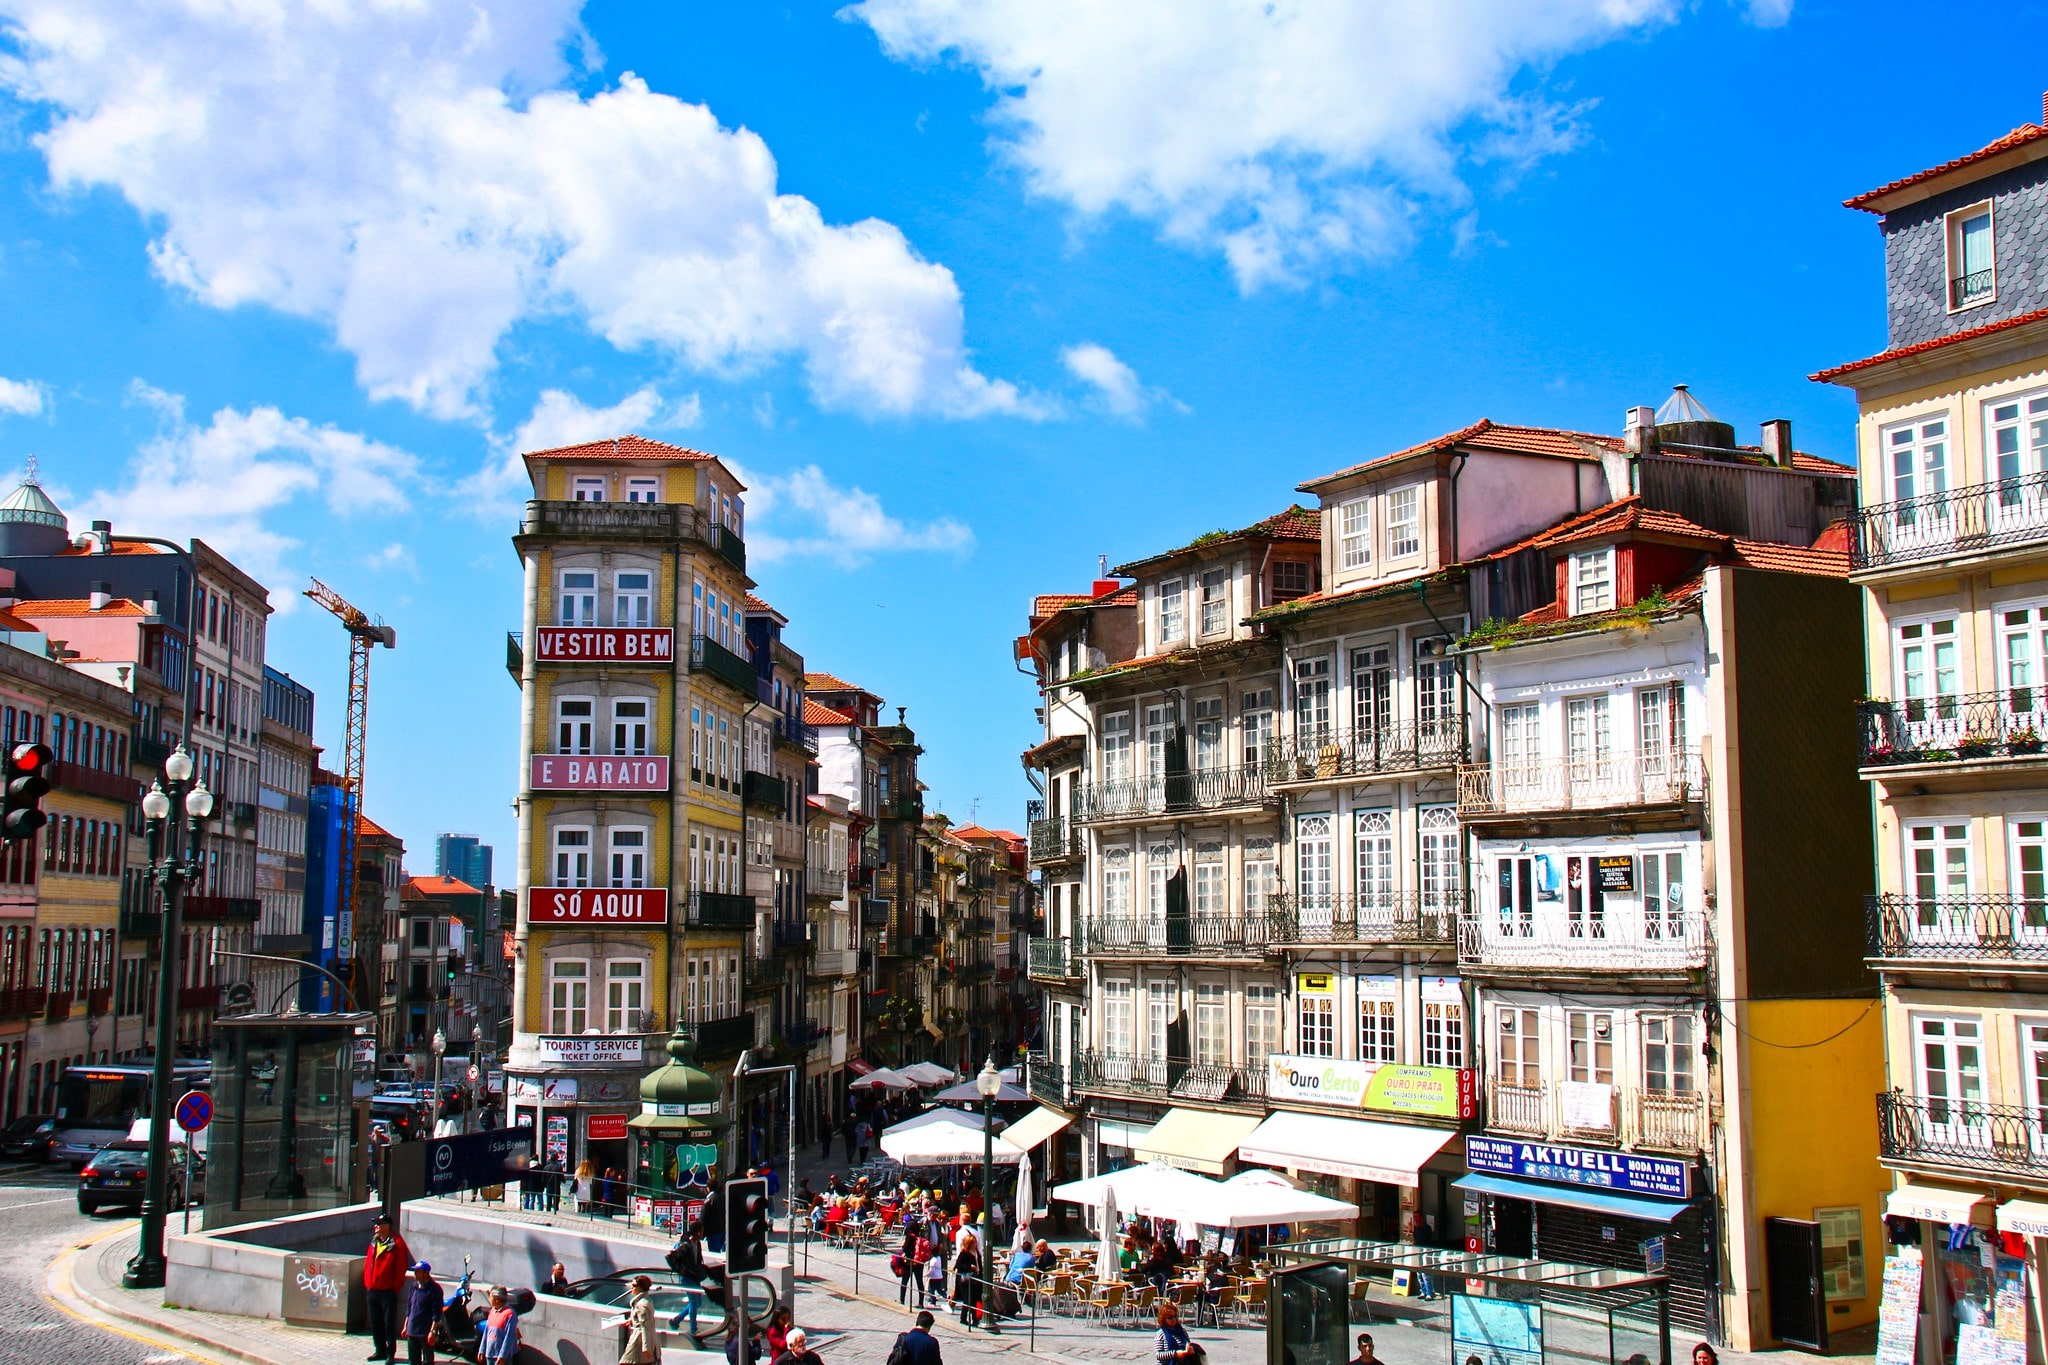 Where to stay in Porto for incredible wine and views? Porto